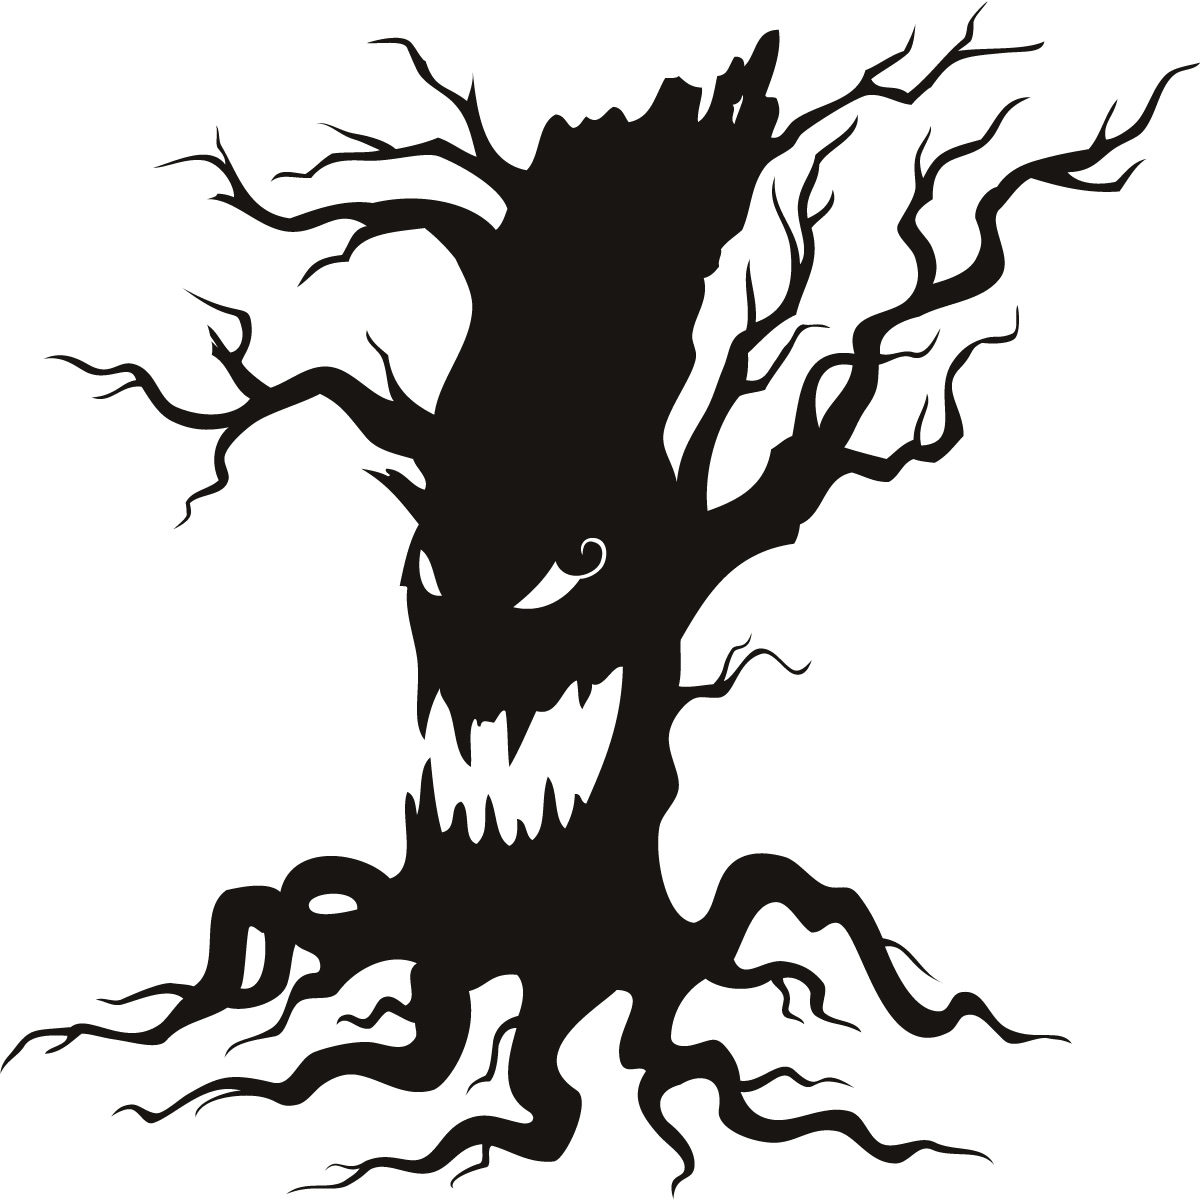 Scary Tree Clip Art - ClipArt Best